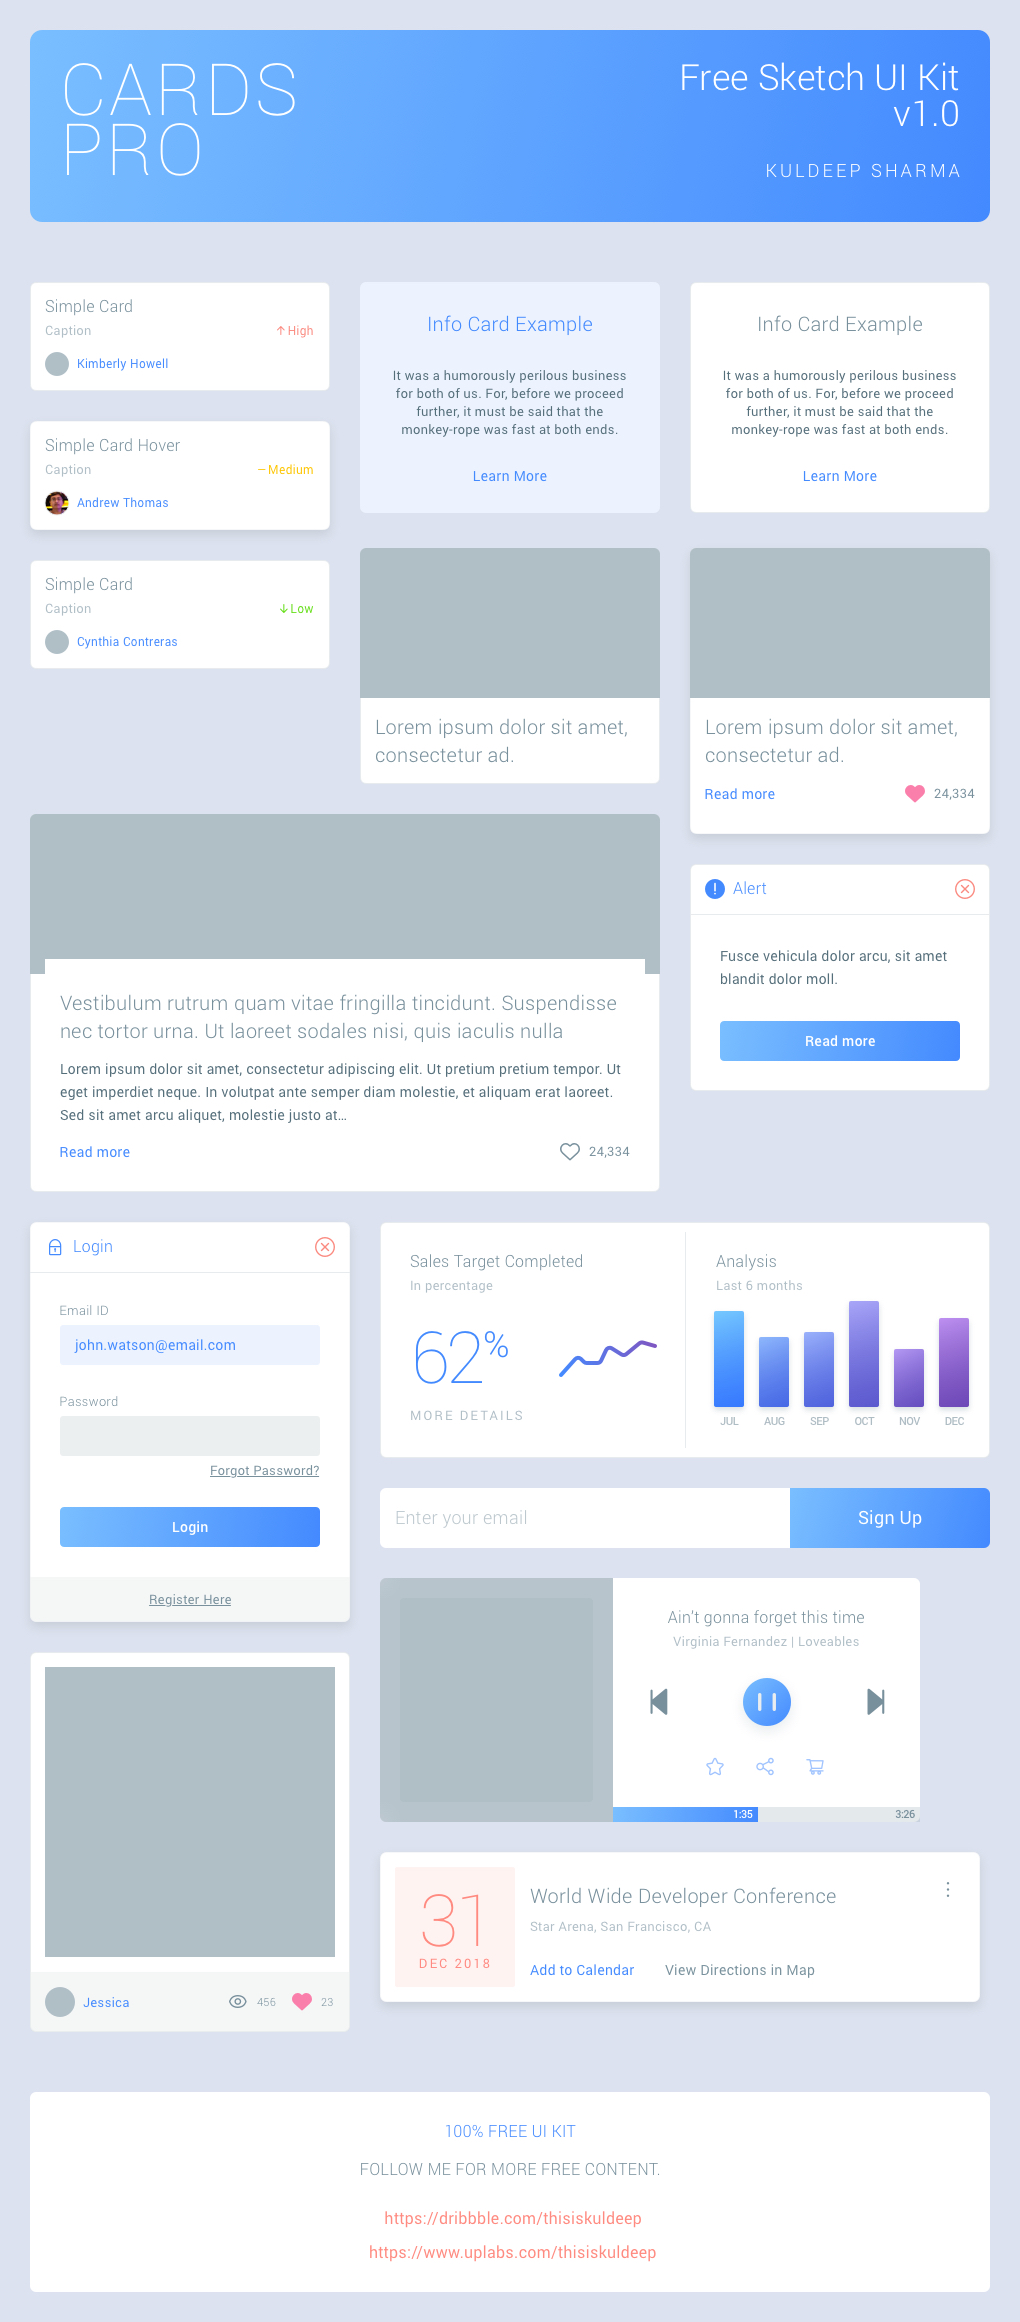 Cards Pro Free UI Kit from UIGarage